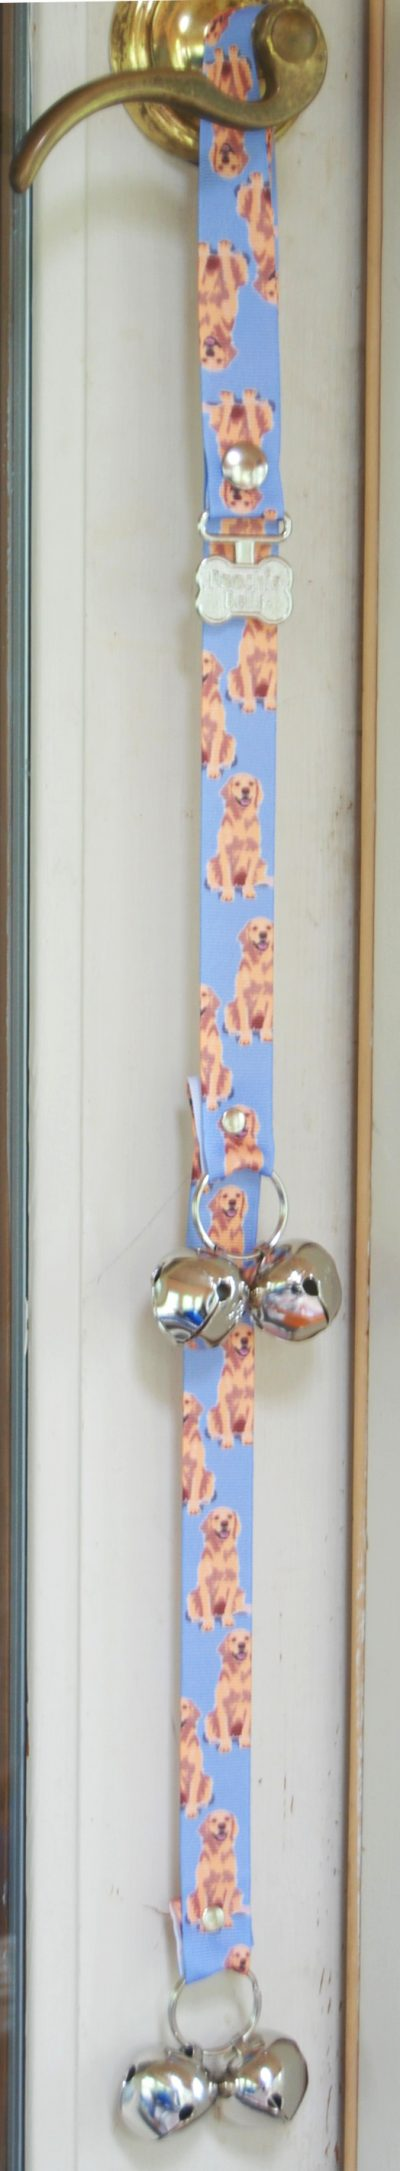 Golden Retriever Puppy Dog Potty Training Doorbells Poochie Bells 1